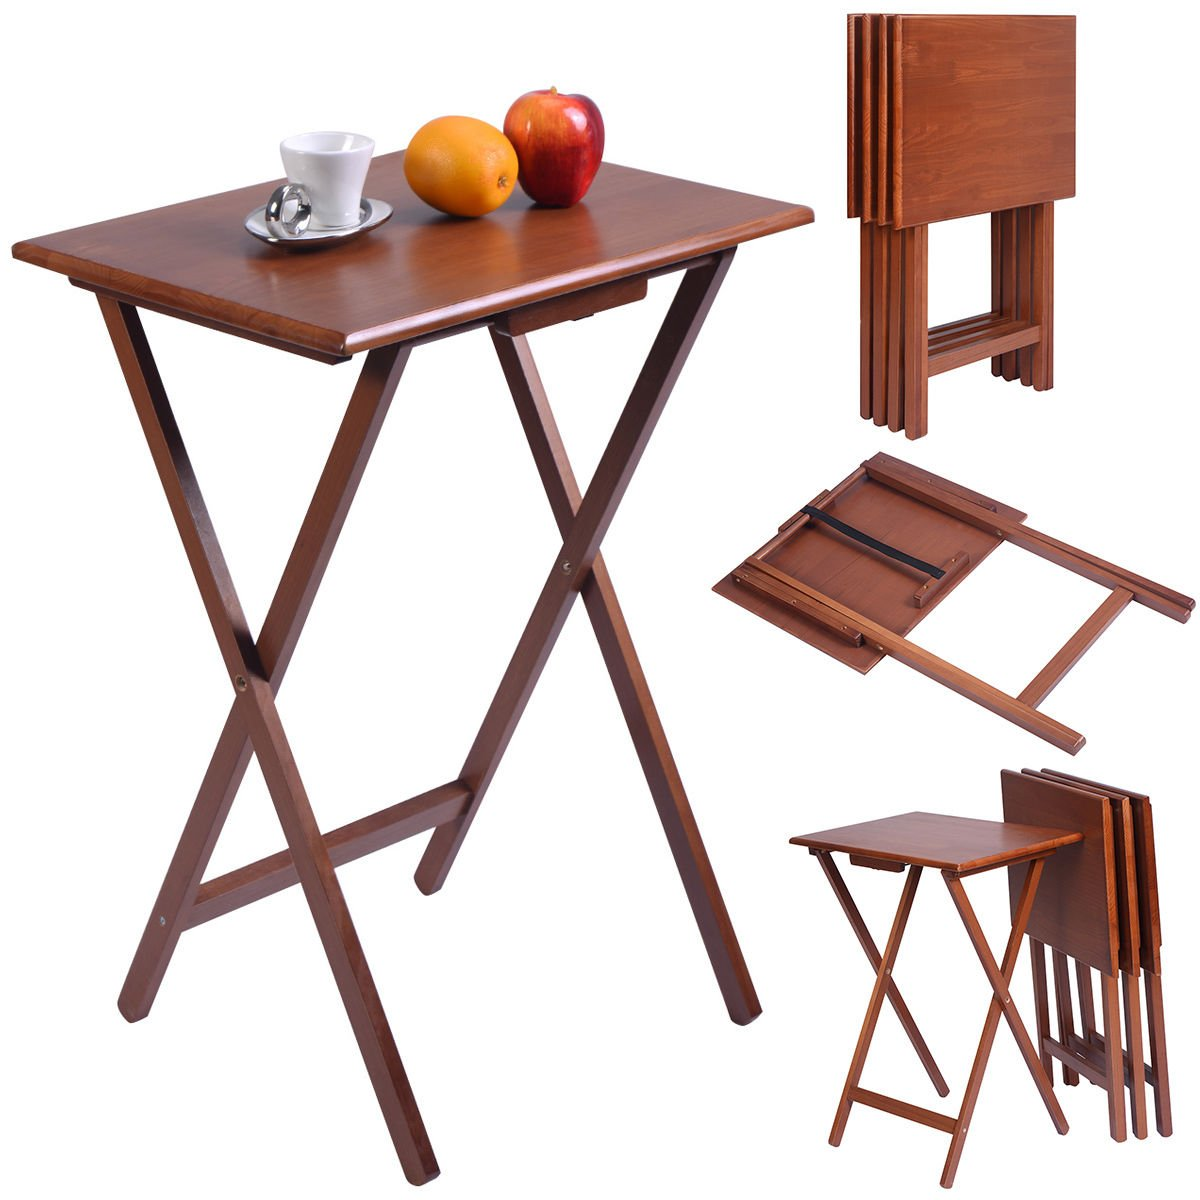 Kchexset of 4 portable wood tv table folding tray desk serving furniture wa the legs feature an elegant x design and fold together easily for quick and